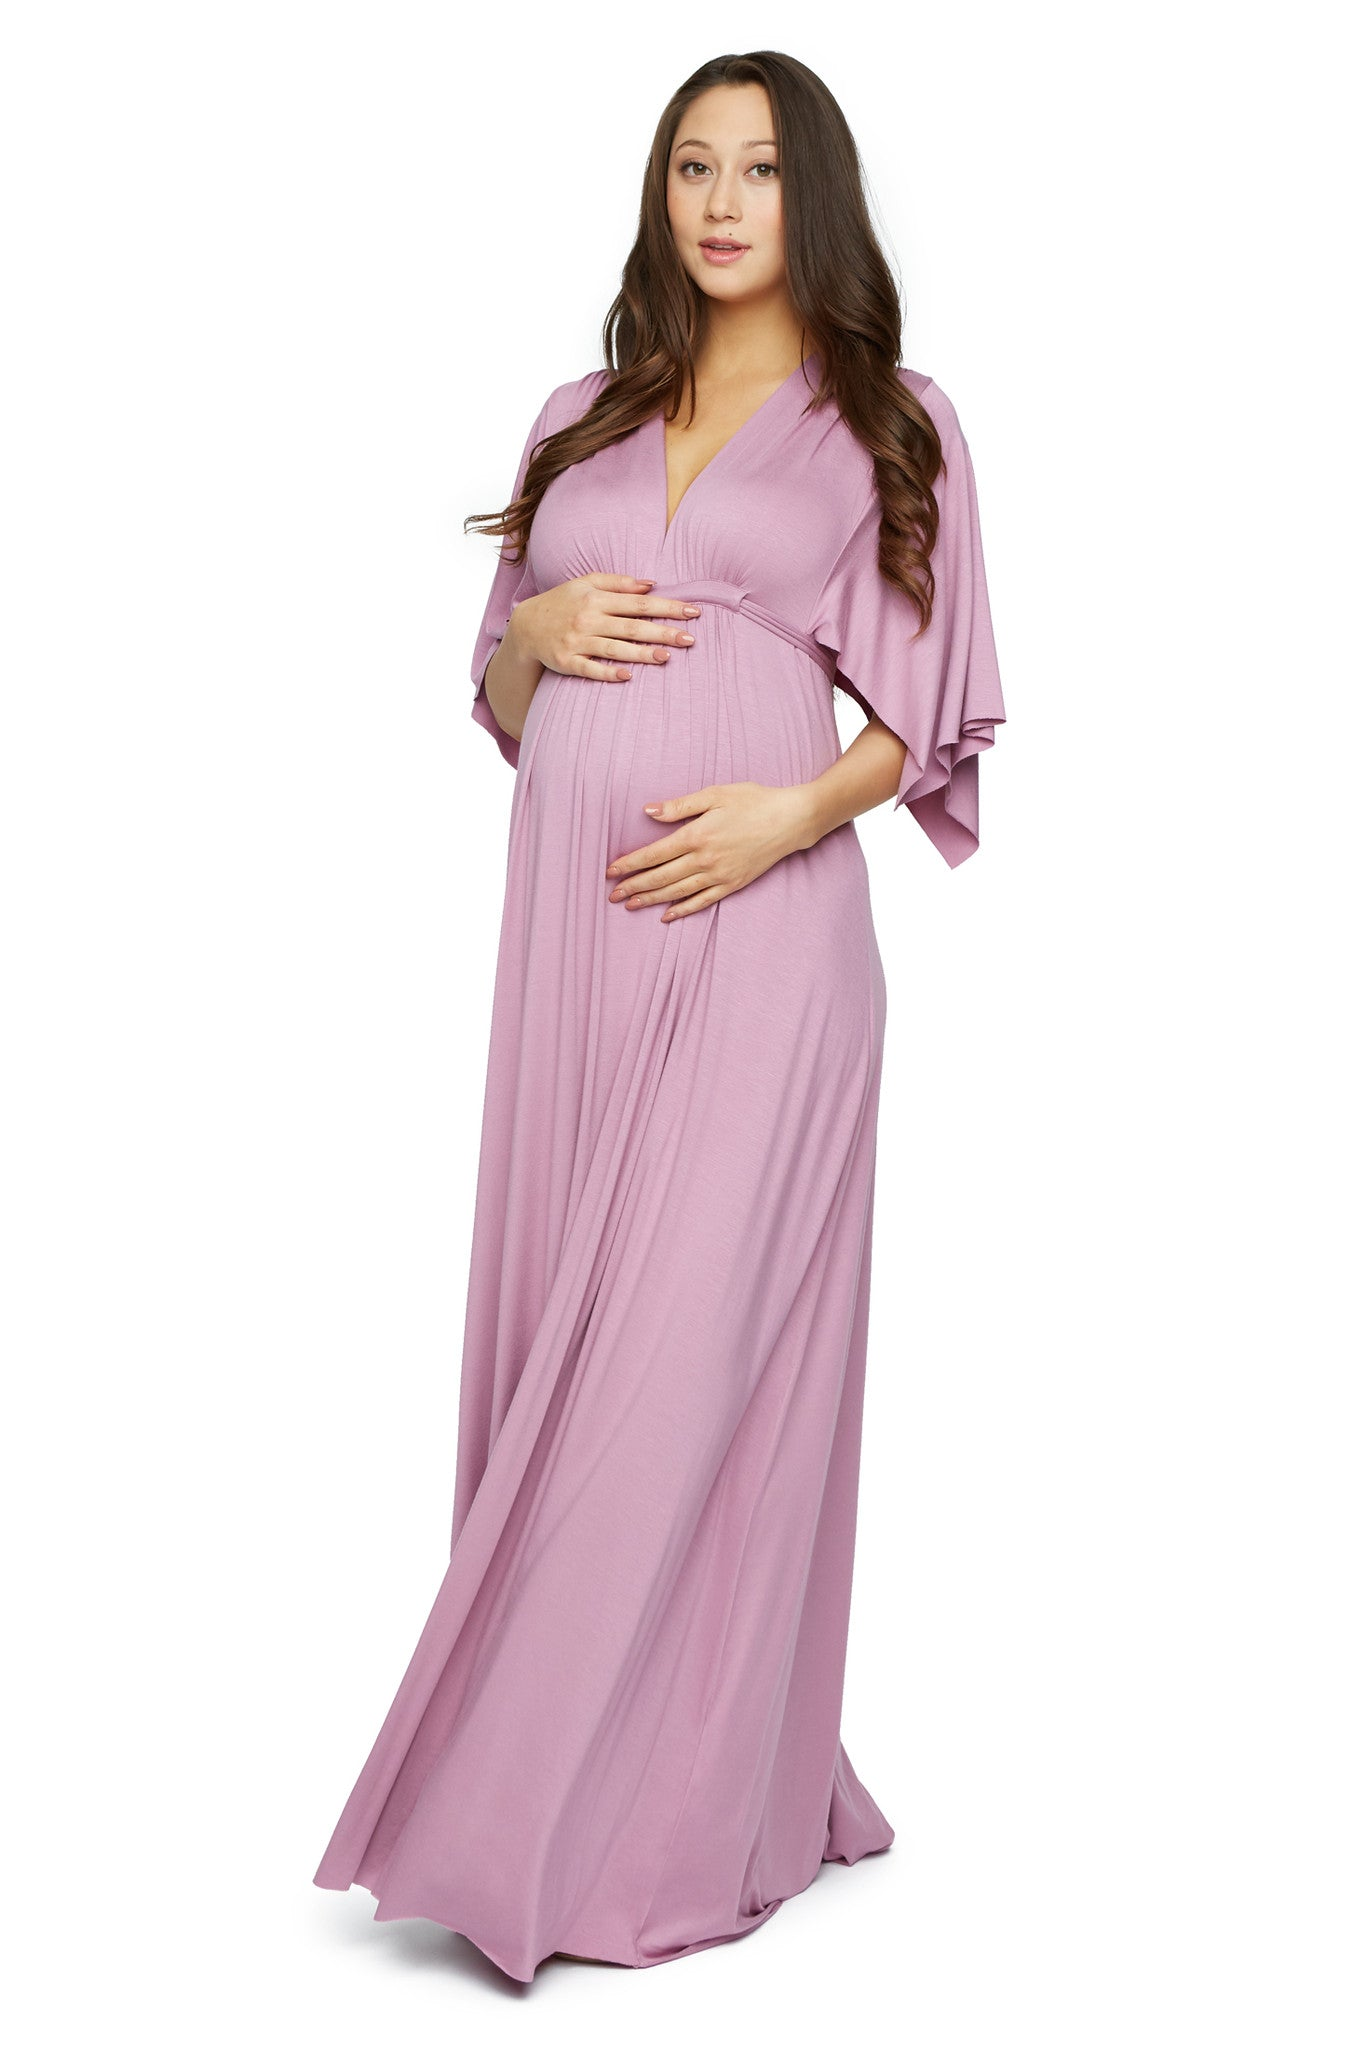 Rachel pally designer dresses rachel pally dresses at muchos besitos rachel pally long caftan maternity dress violeta ombrellifo Image collections